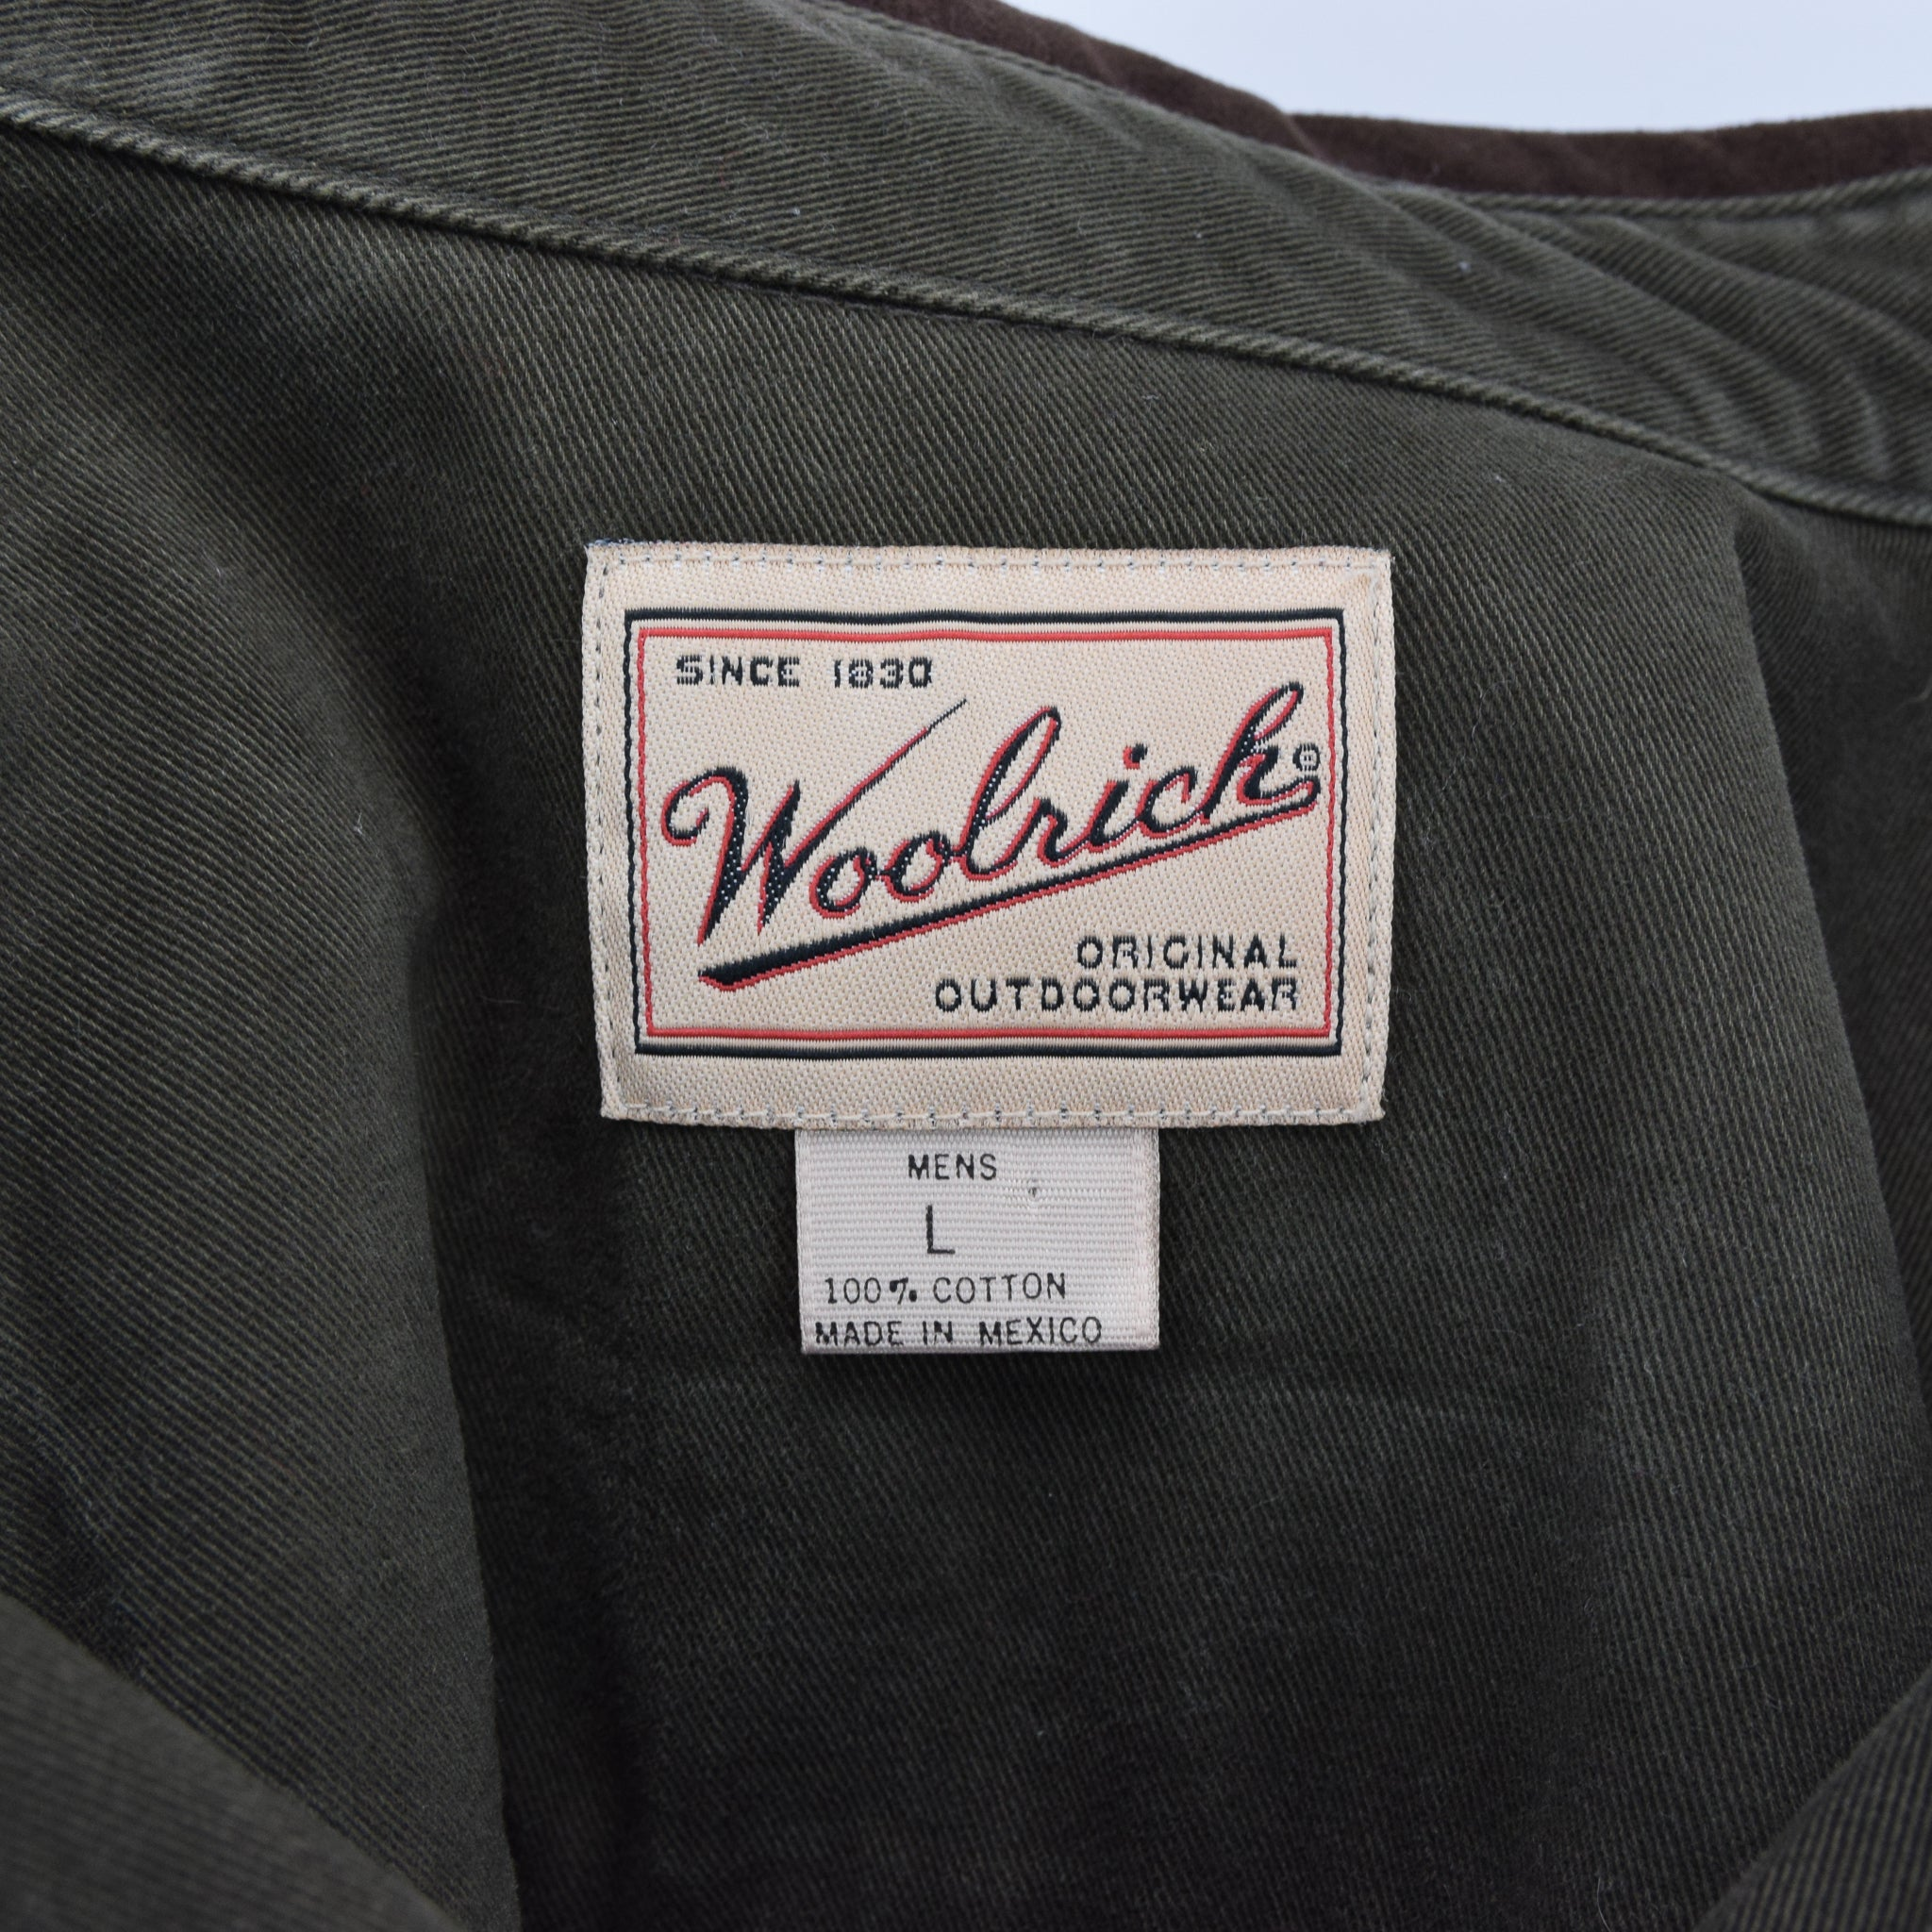 Vintage Woolrich Dark Green CPO Style Cotton Field Shirt L label